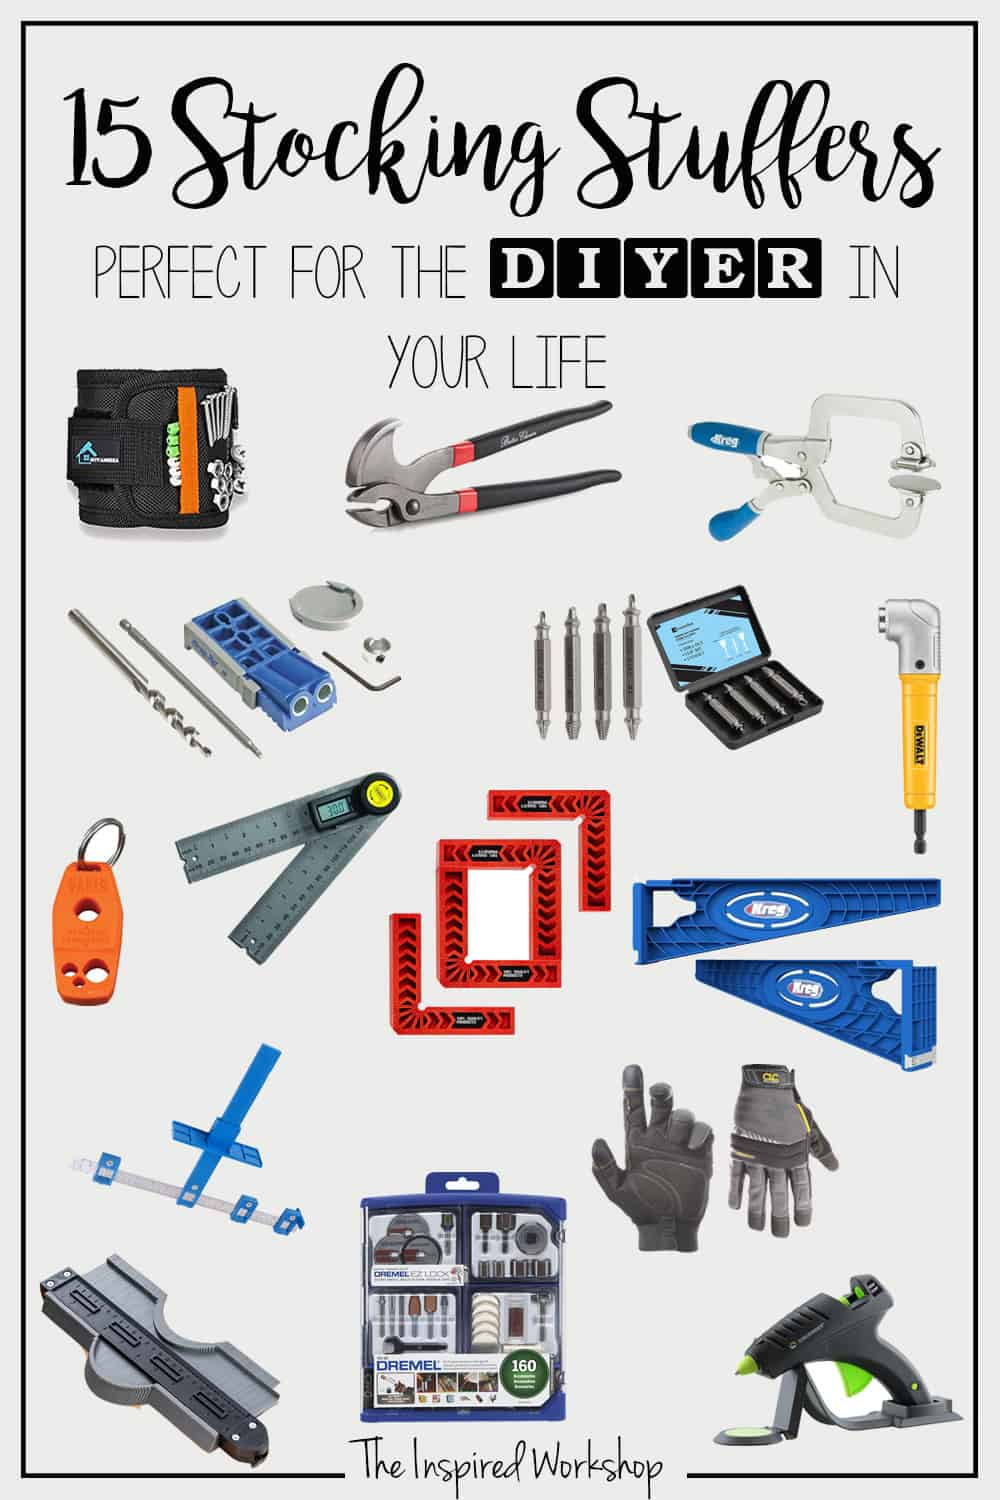 15 Stocking Stuffer Ideas for DIYers 2019